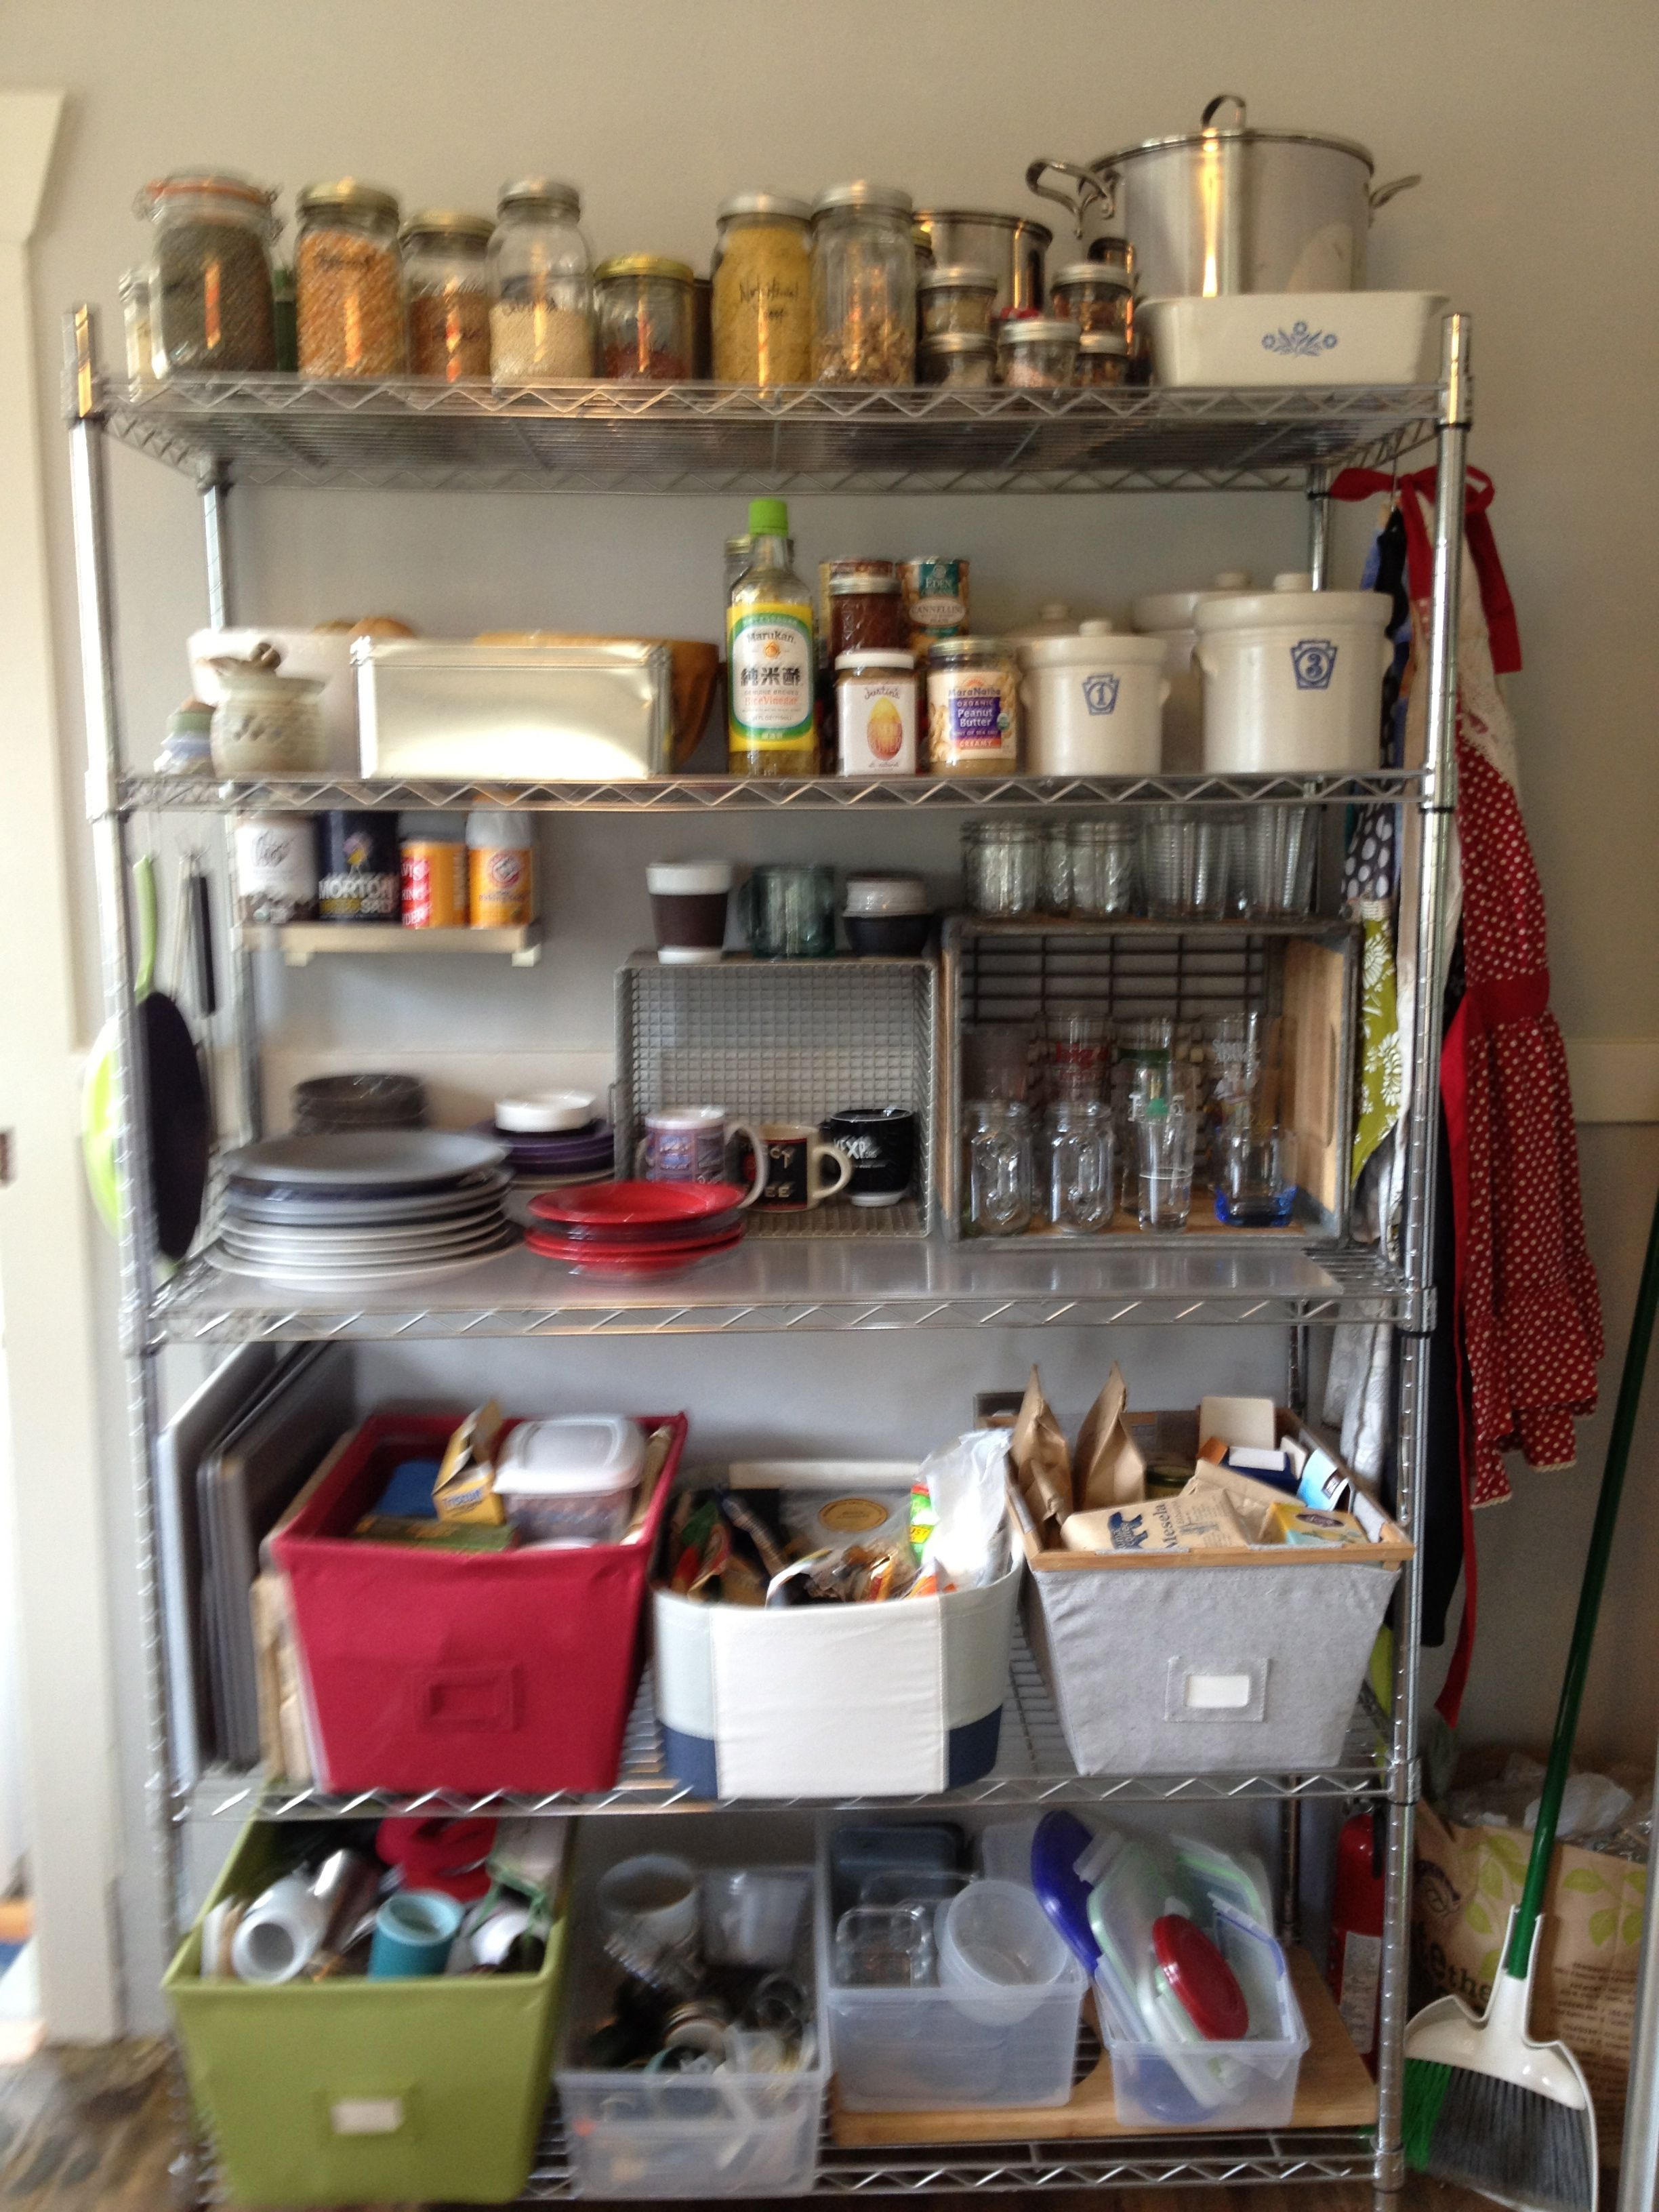 38 Creative Storage Solutions For Small Spaces Awesome Diy Ideas Kitchen Without Pantry No Pantry Solutions Storage Solutions Diy